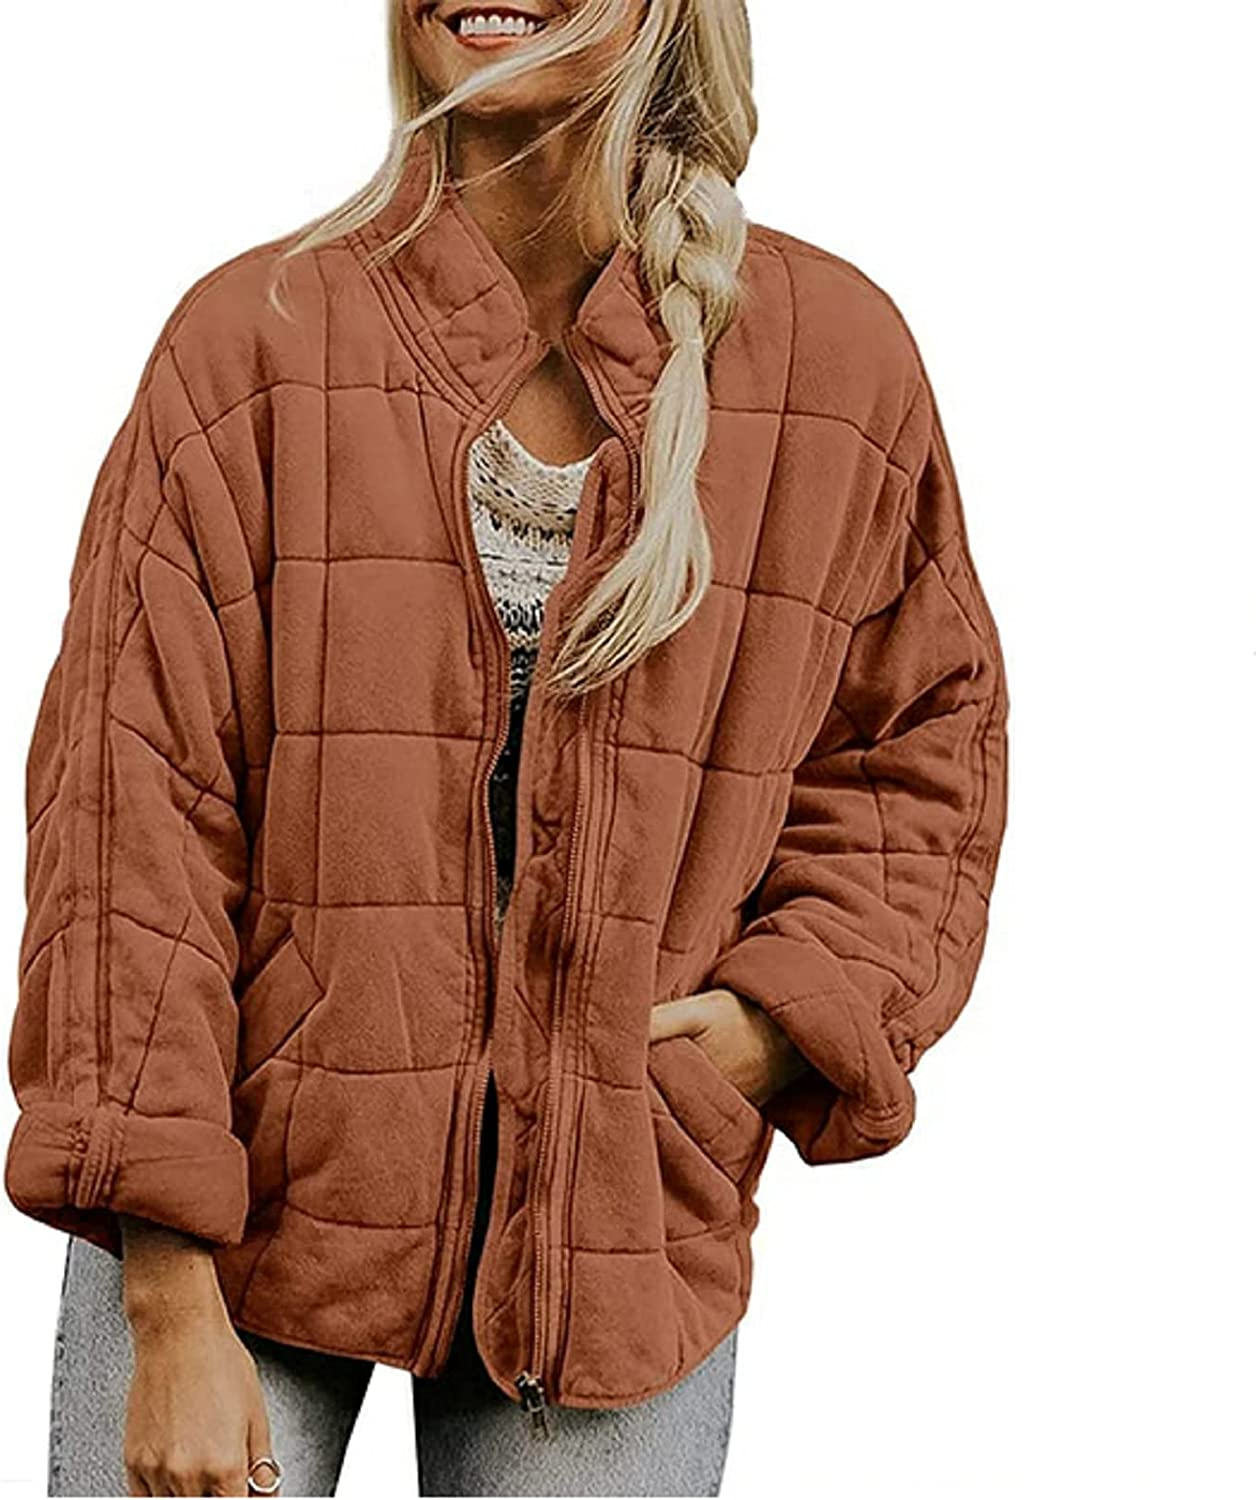 Womens Casual Dolman Quilted Jackets Zip Up Long Sleeve Lightweight Coat Loose Drop Shoulder Warm Outwear with Pockets